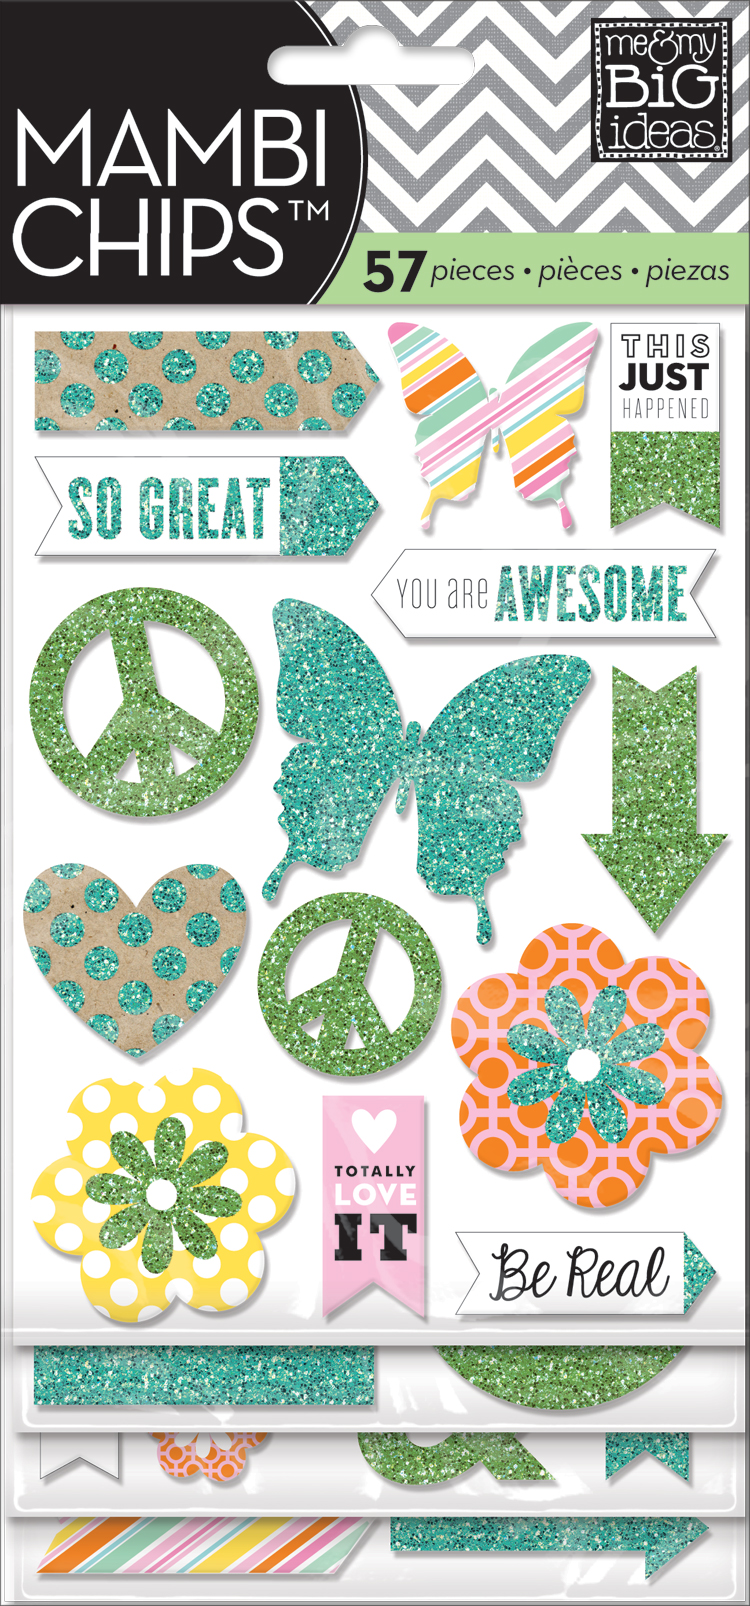 mambiCHIPS: teal & green glitter chipboard scrapbooking embellishments.